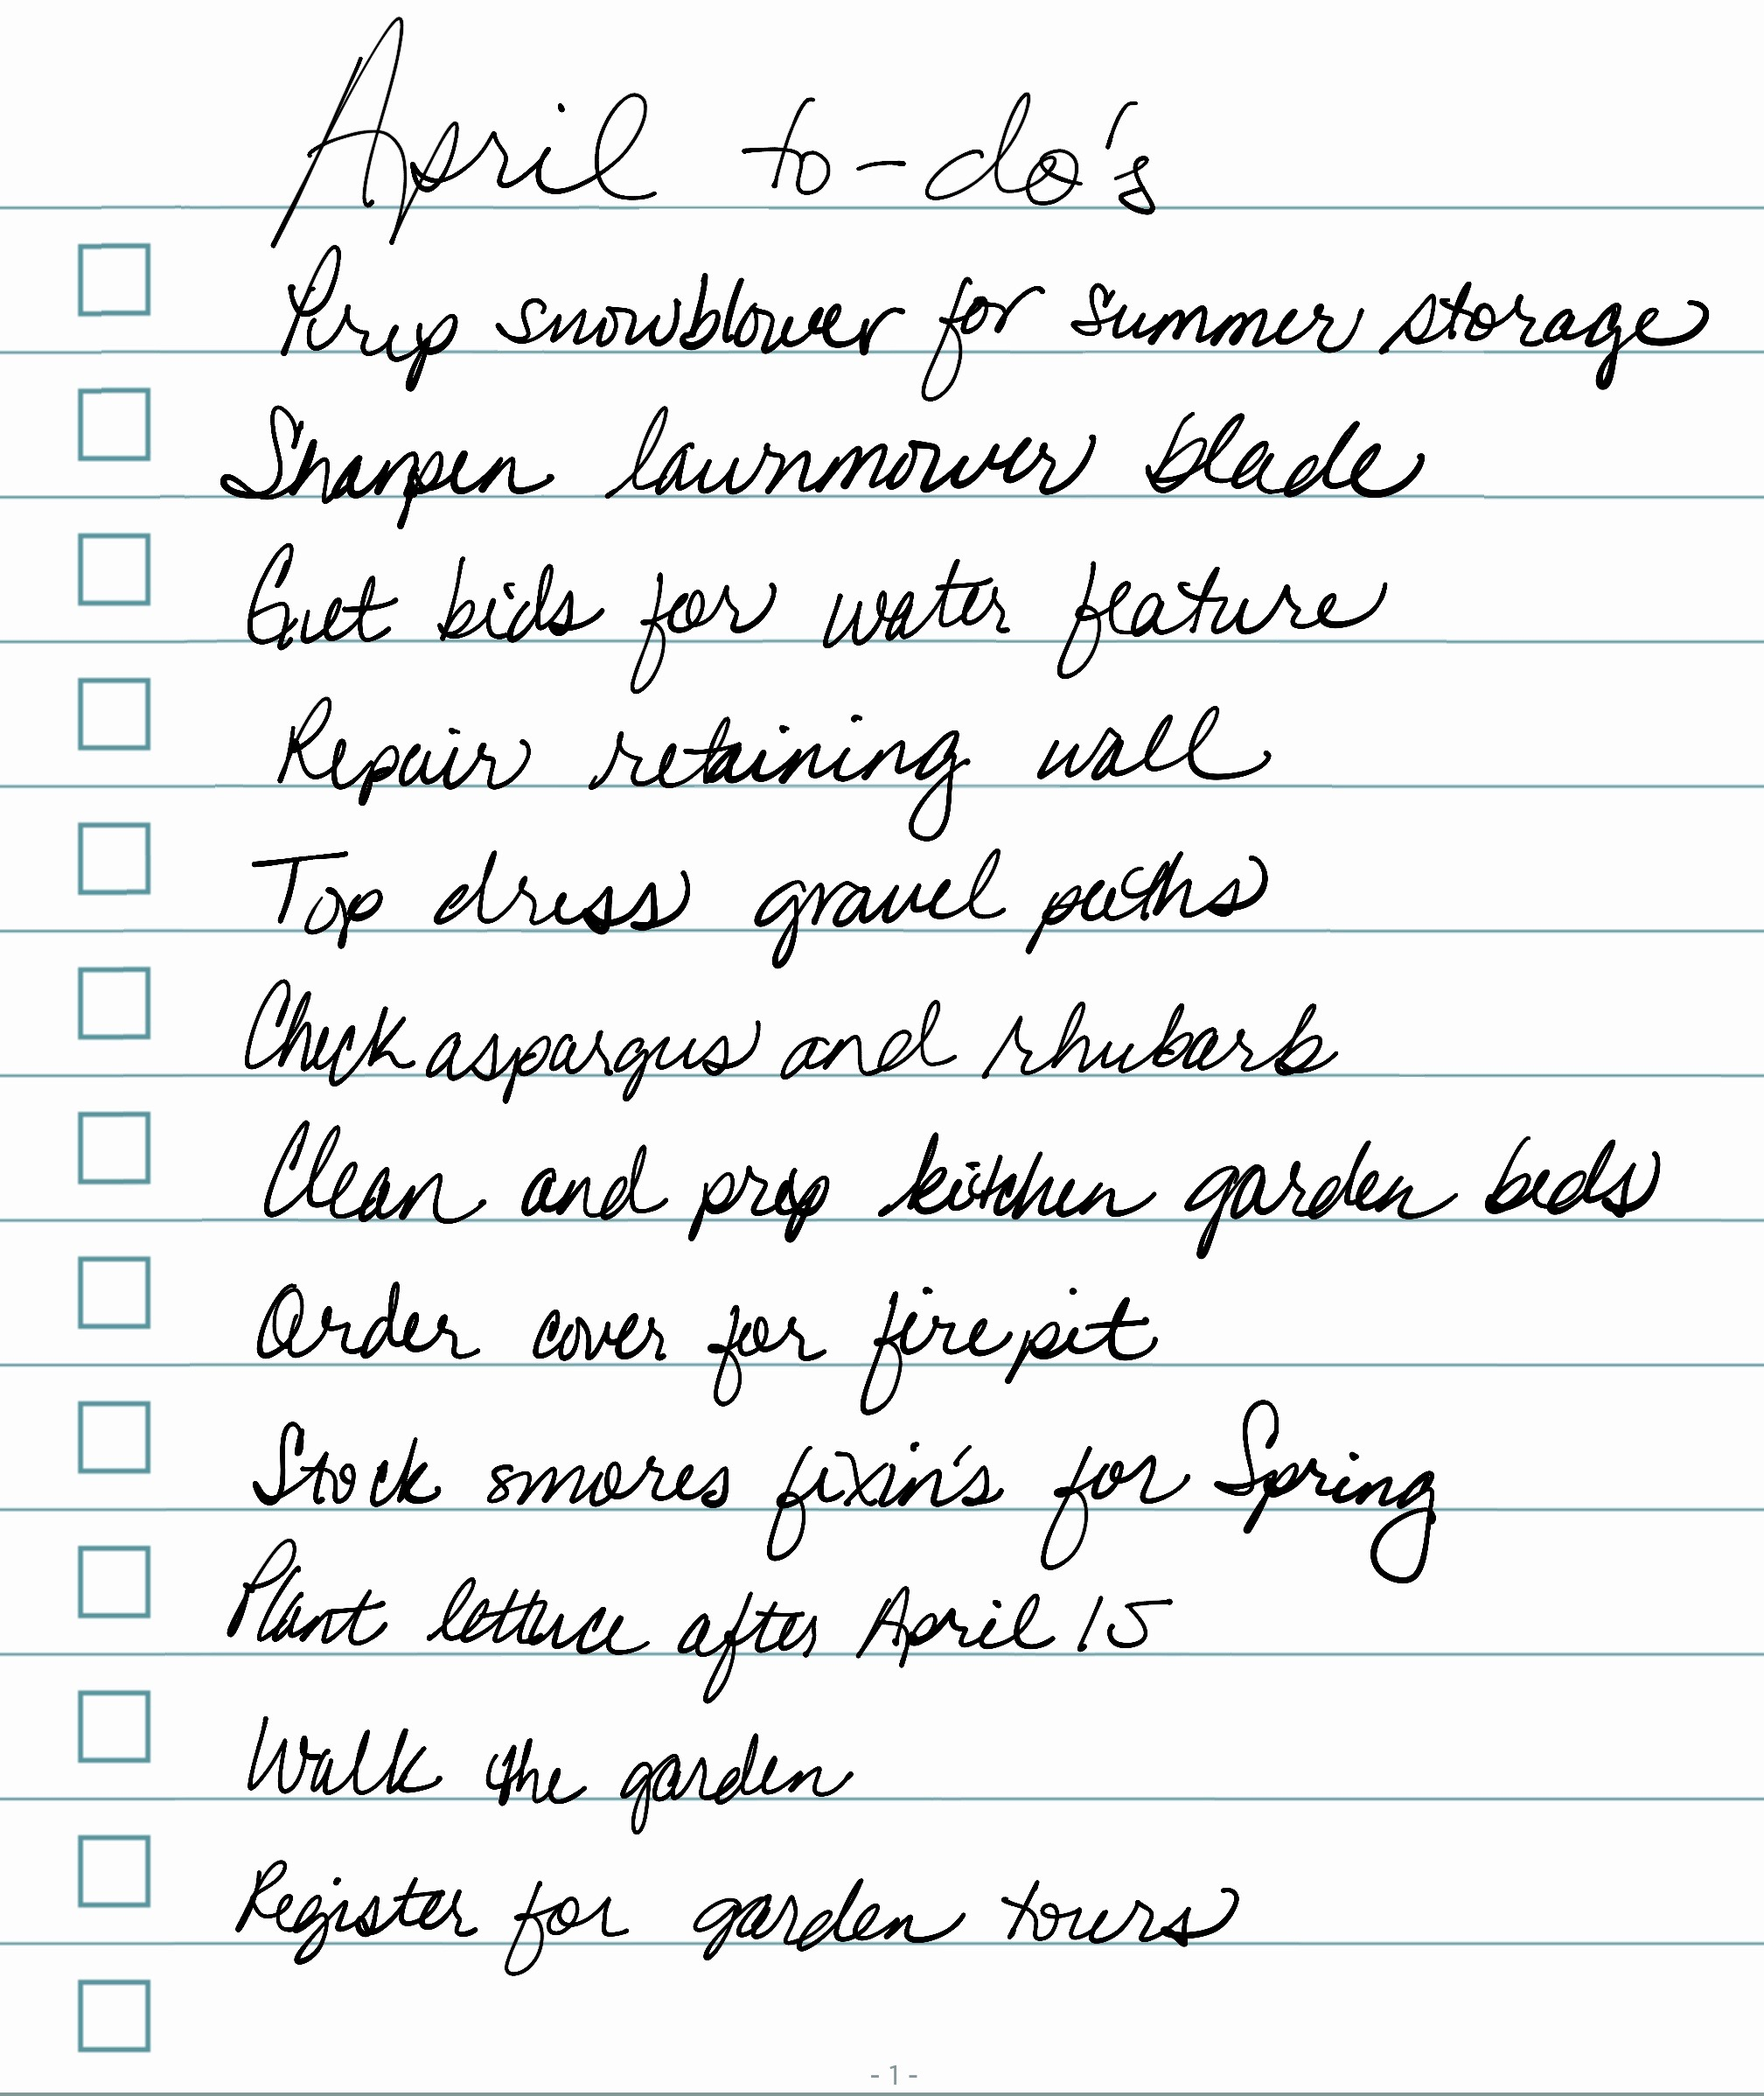 6ftmama.com April 2016 to-do list